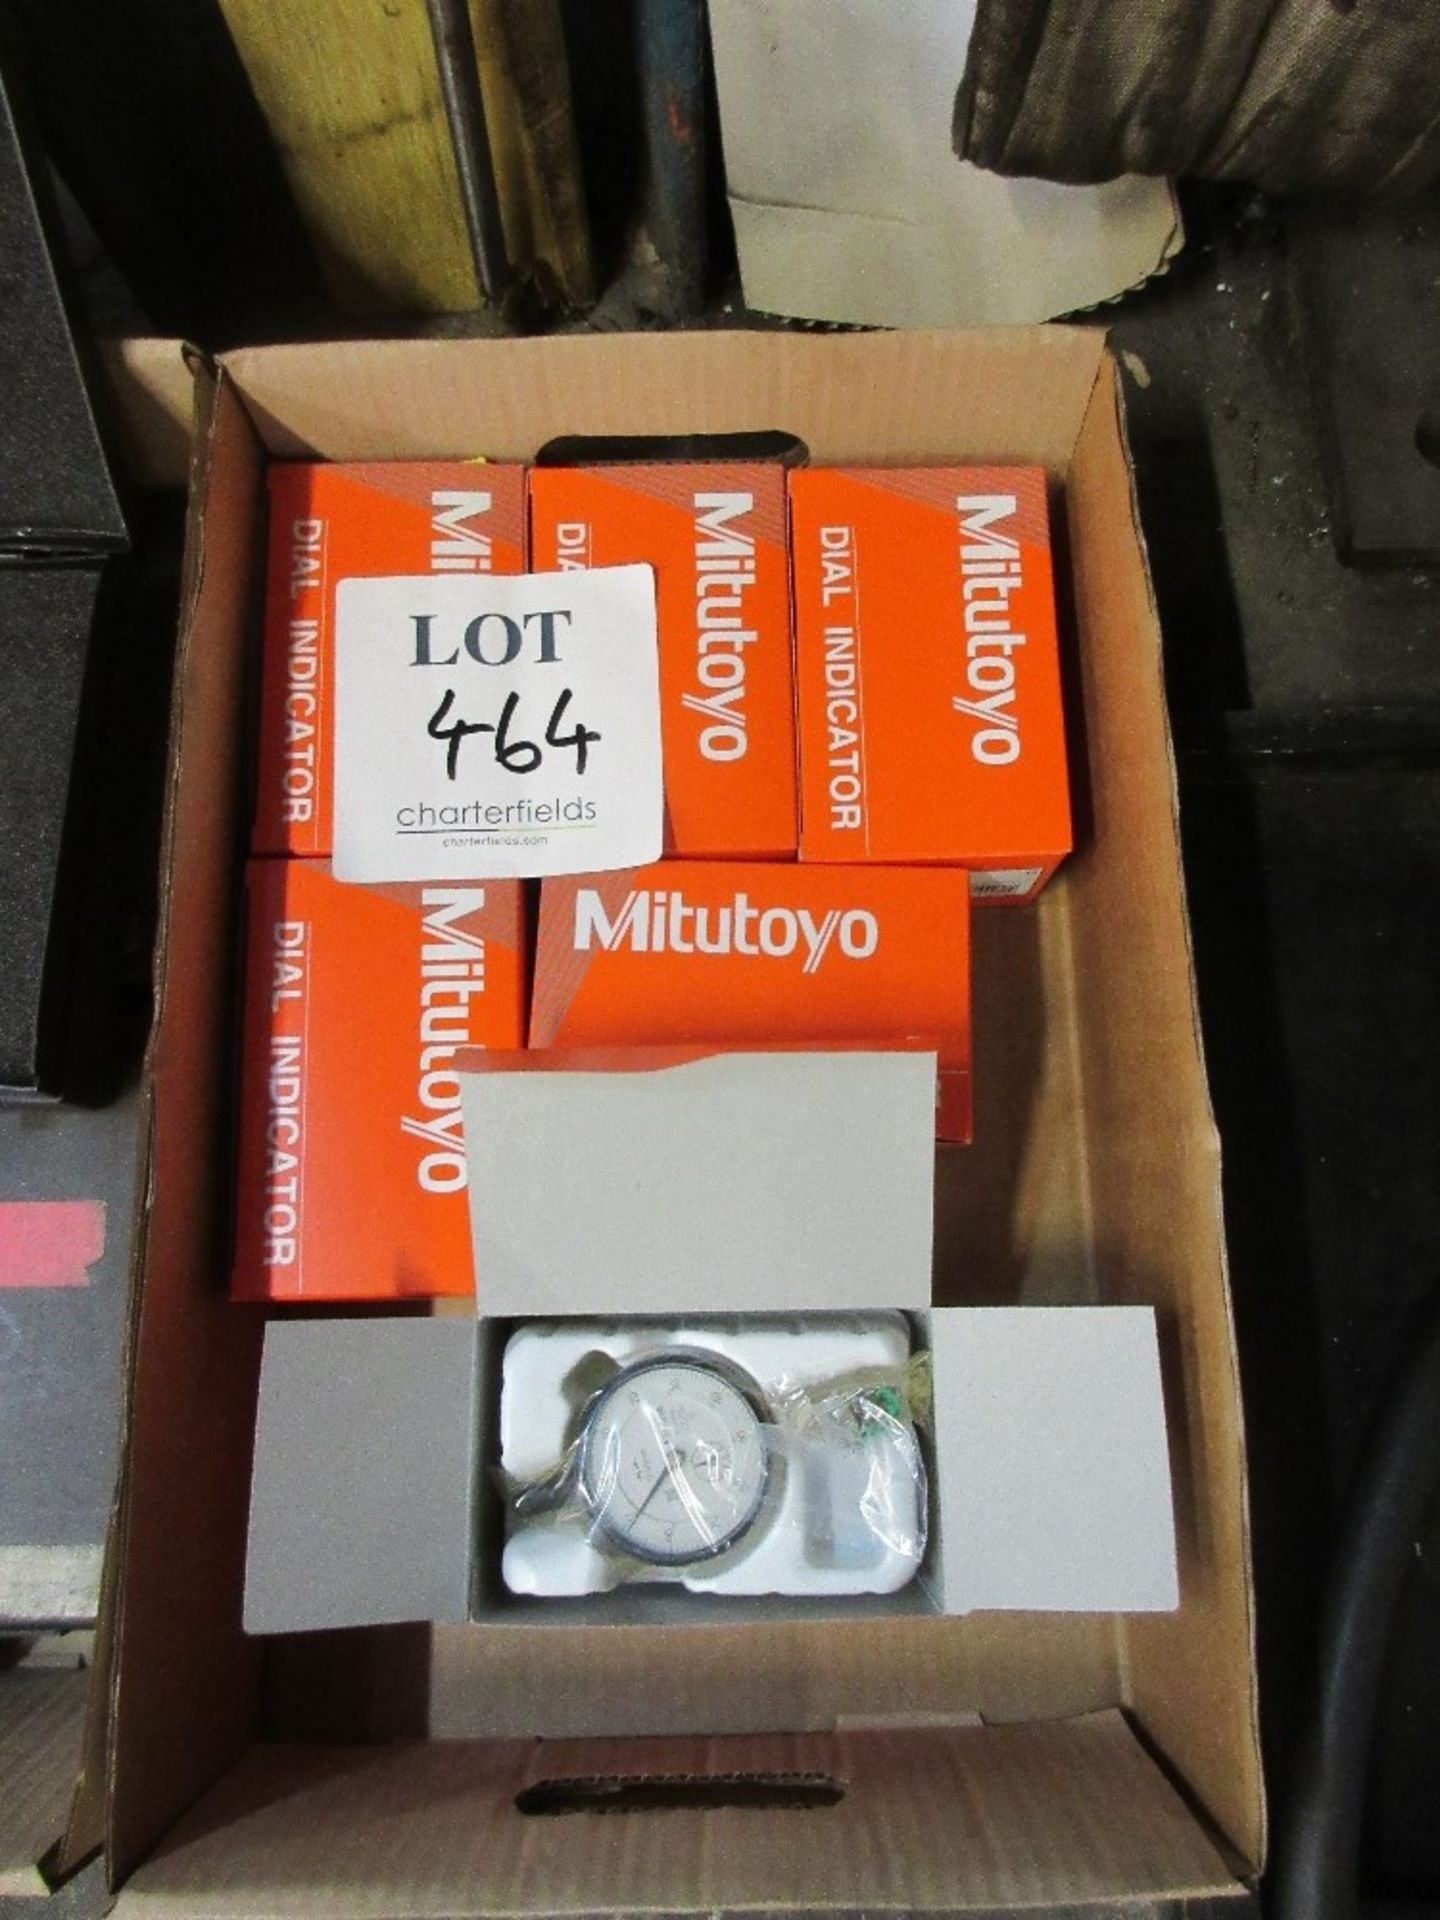 Lot 464 - 6 - Mitutoyo dial indicators